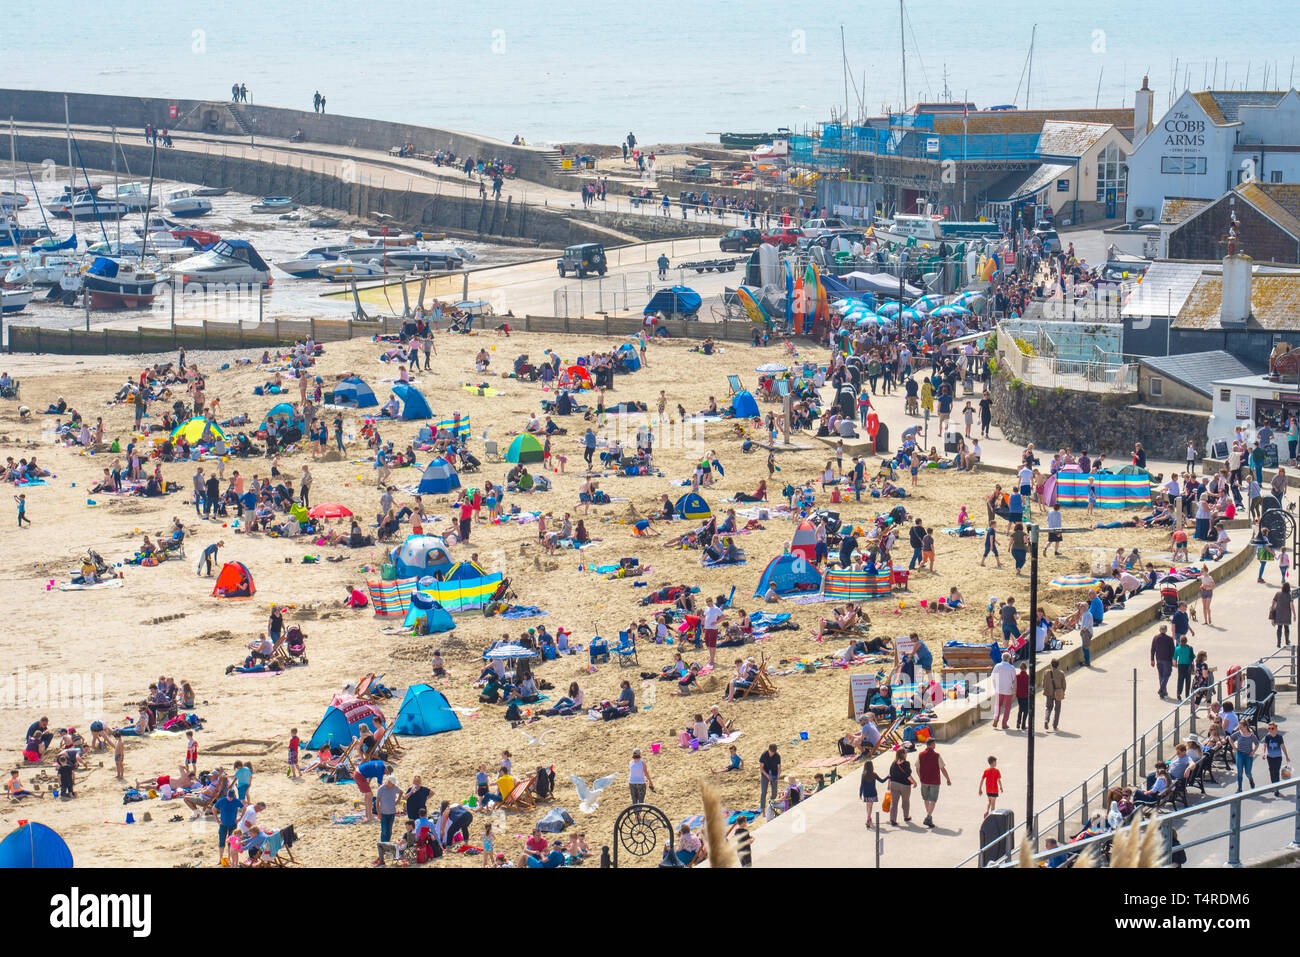 Lyme Regis, Dorset, UK. 18th April 2019. UK Weather: Crowds of holidaymakers and beachgoers flock to the picturesque beach at the seaside resort of Lyme Regis to bask in scorching hot sunshine. The balmy conditions are expected to continue with temperatures soaring over the Easter Holiday Bank Holiday Weekend. Credit: Celia McMahon/Alamy Live News. Stock Photo